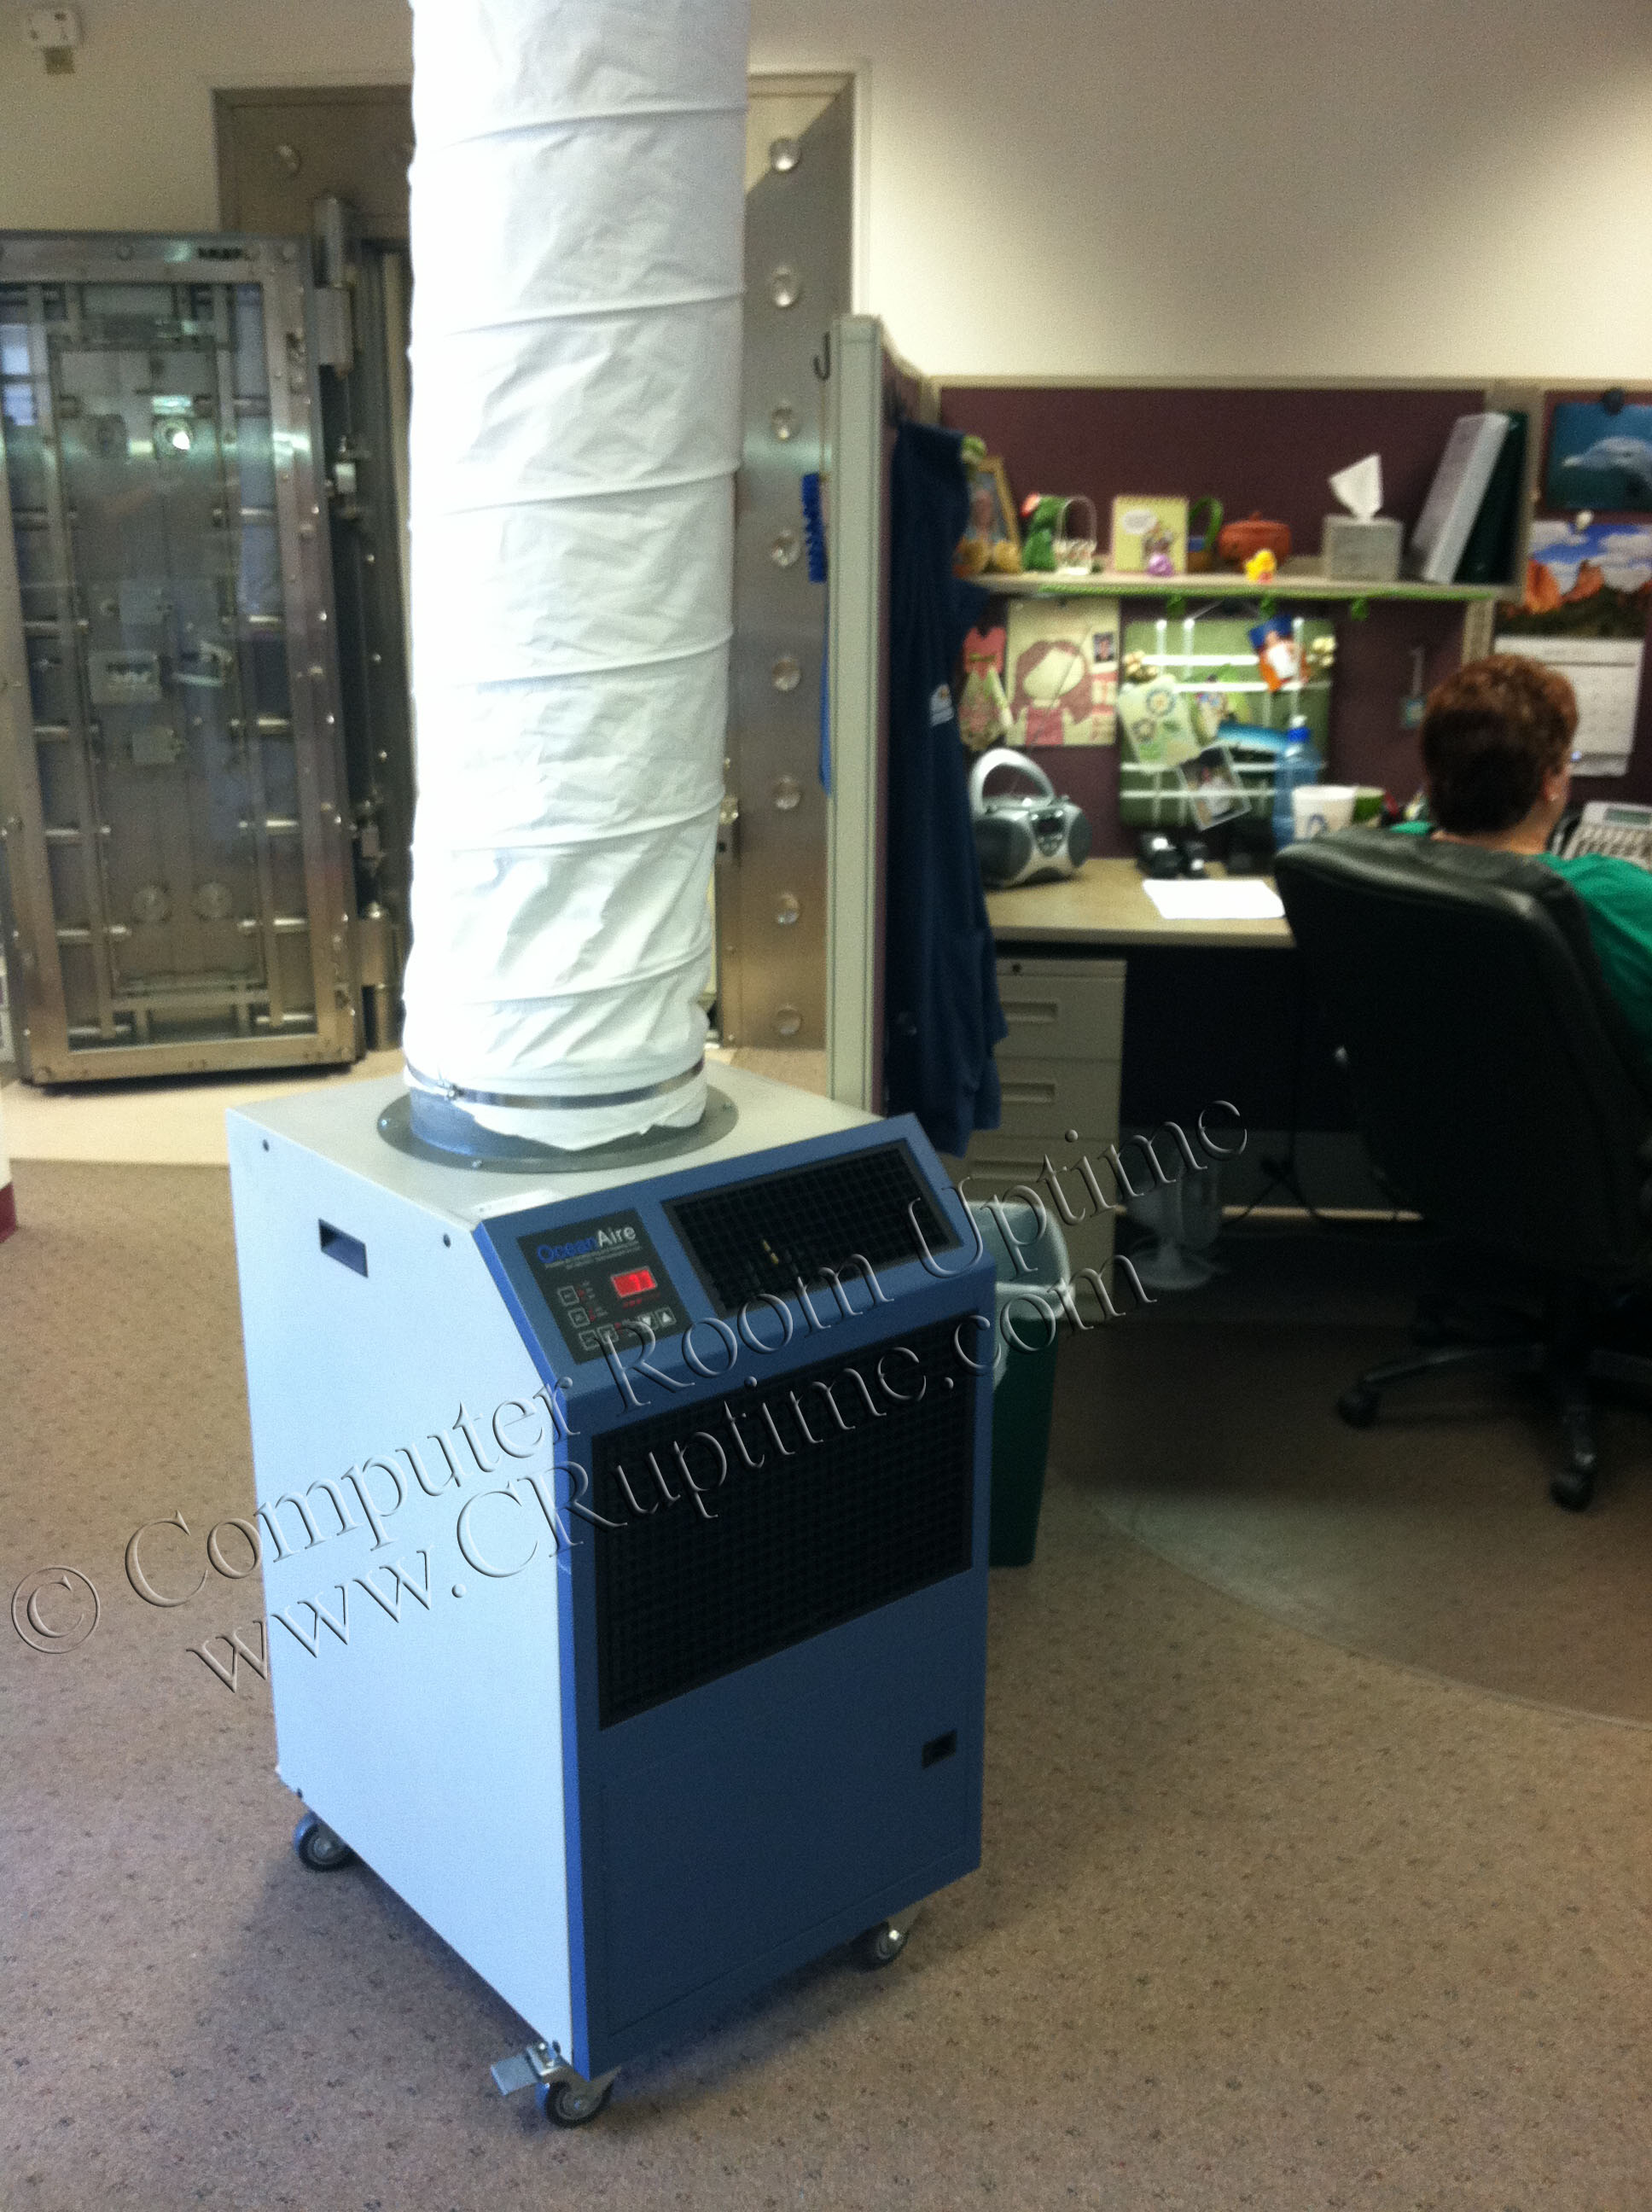 Portable Air Conditioning Rentals Office Environments